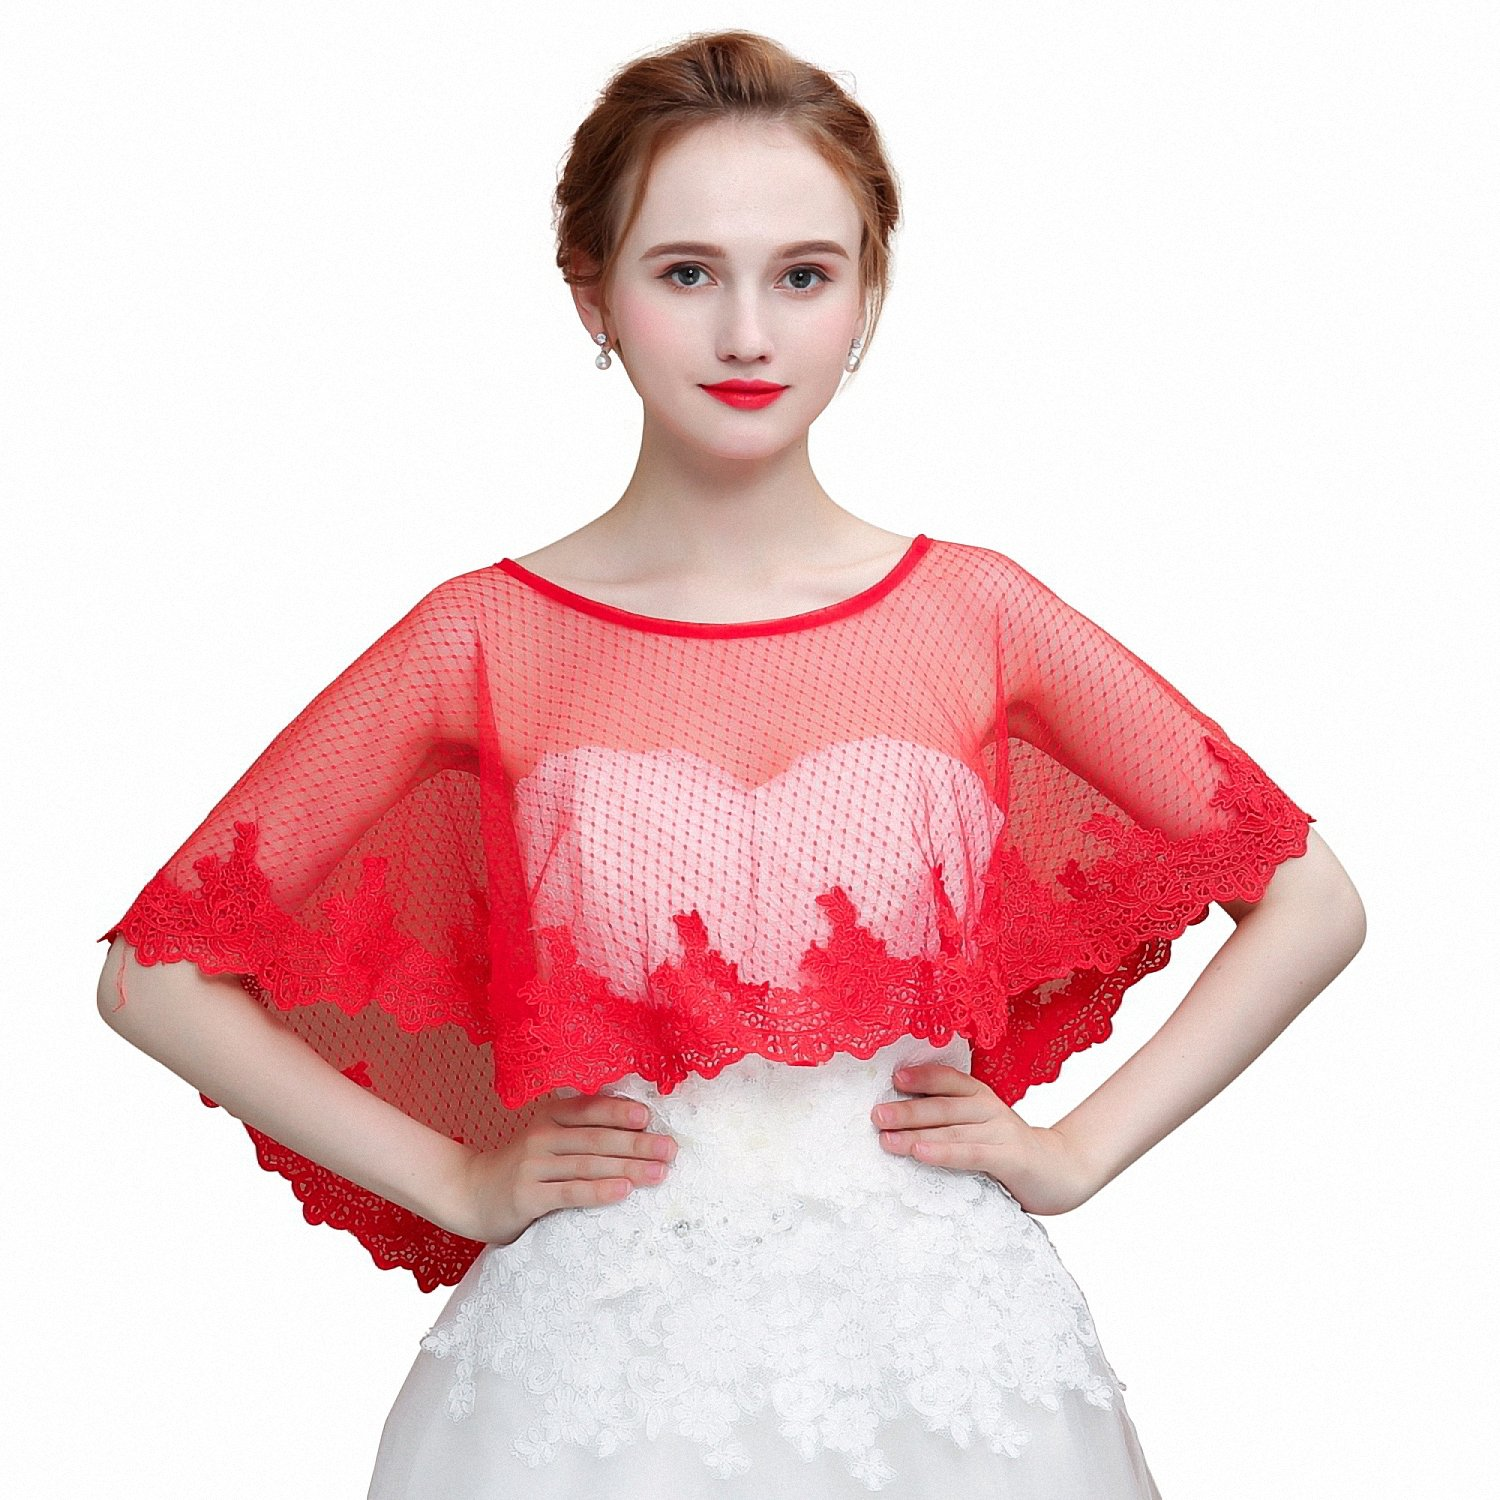 Kanrome Fashion Women Wrap Lace Edge Dot Tulle Shawl For Wedding Bridal Red At Amazon Women's Clothing Store: Red Bridal Wedding Dress Cover Ups At Websimilar.org